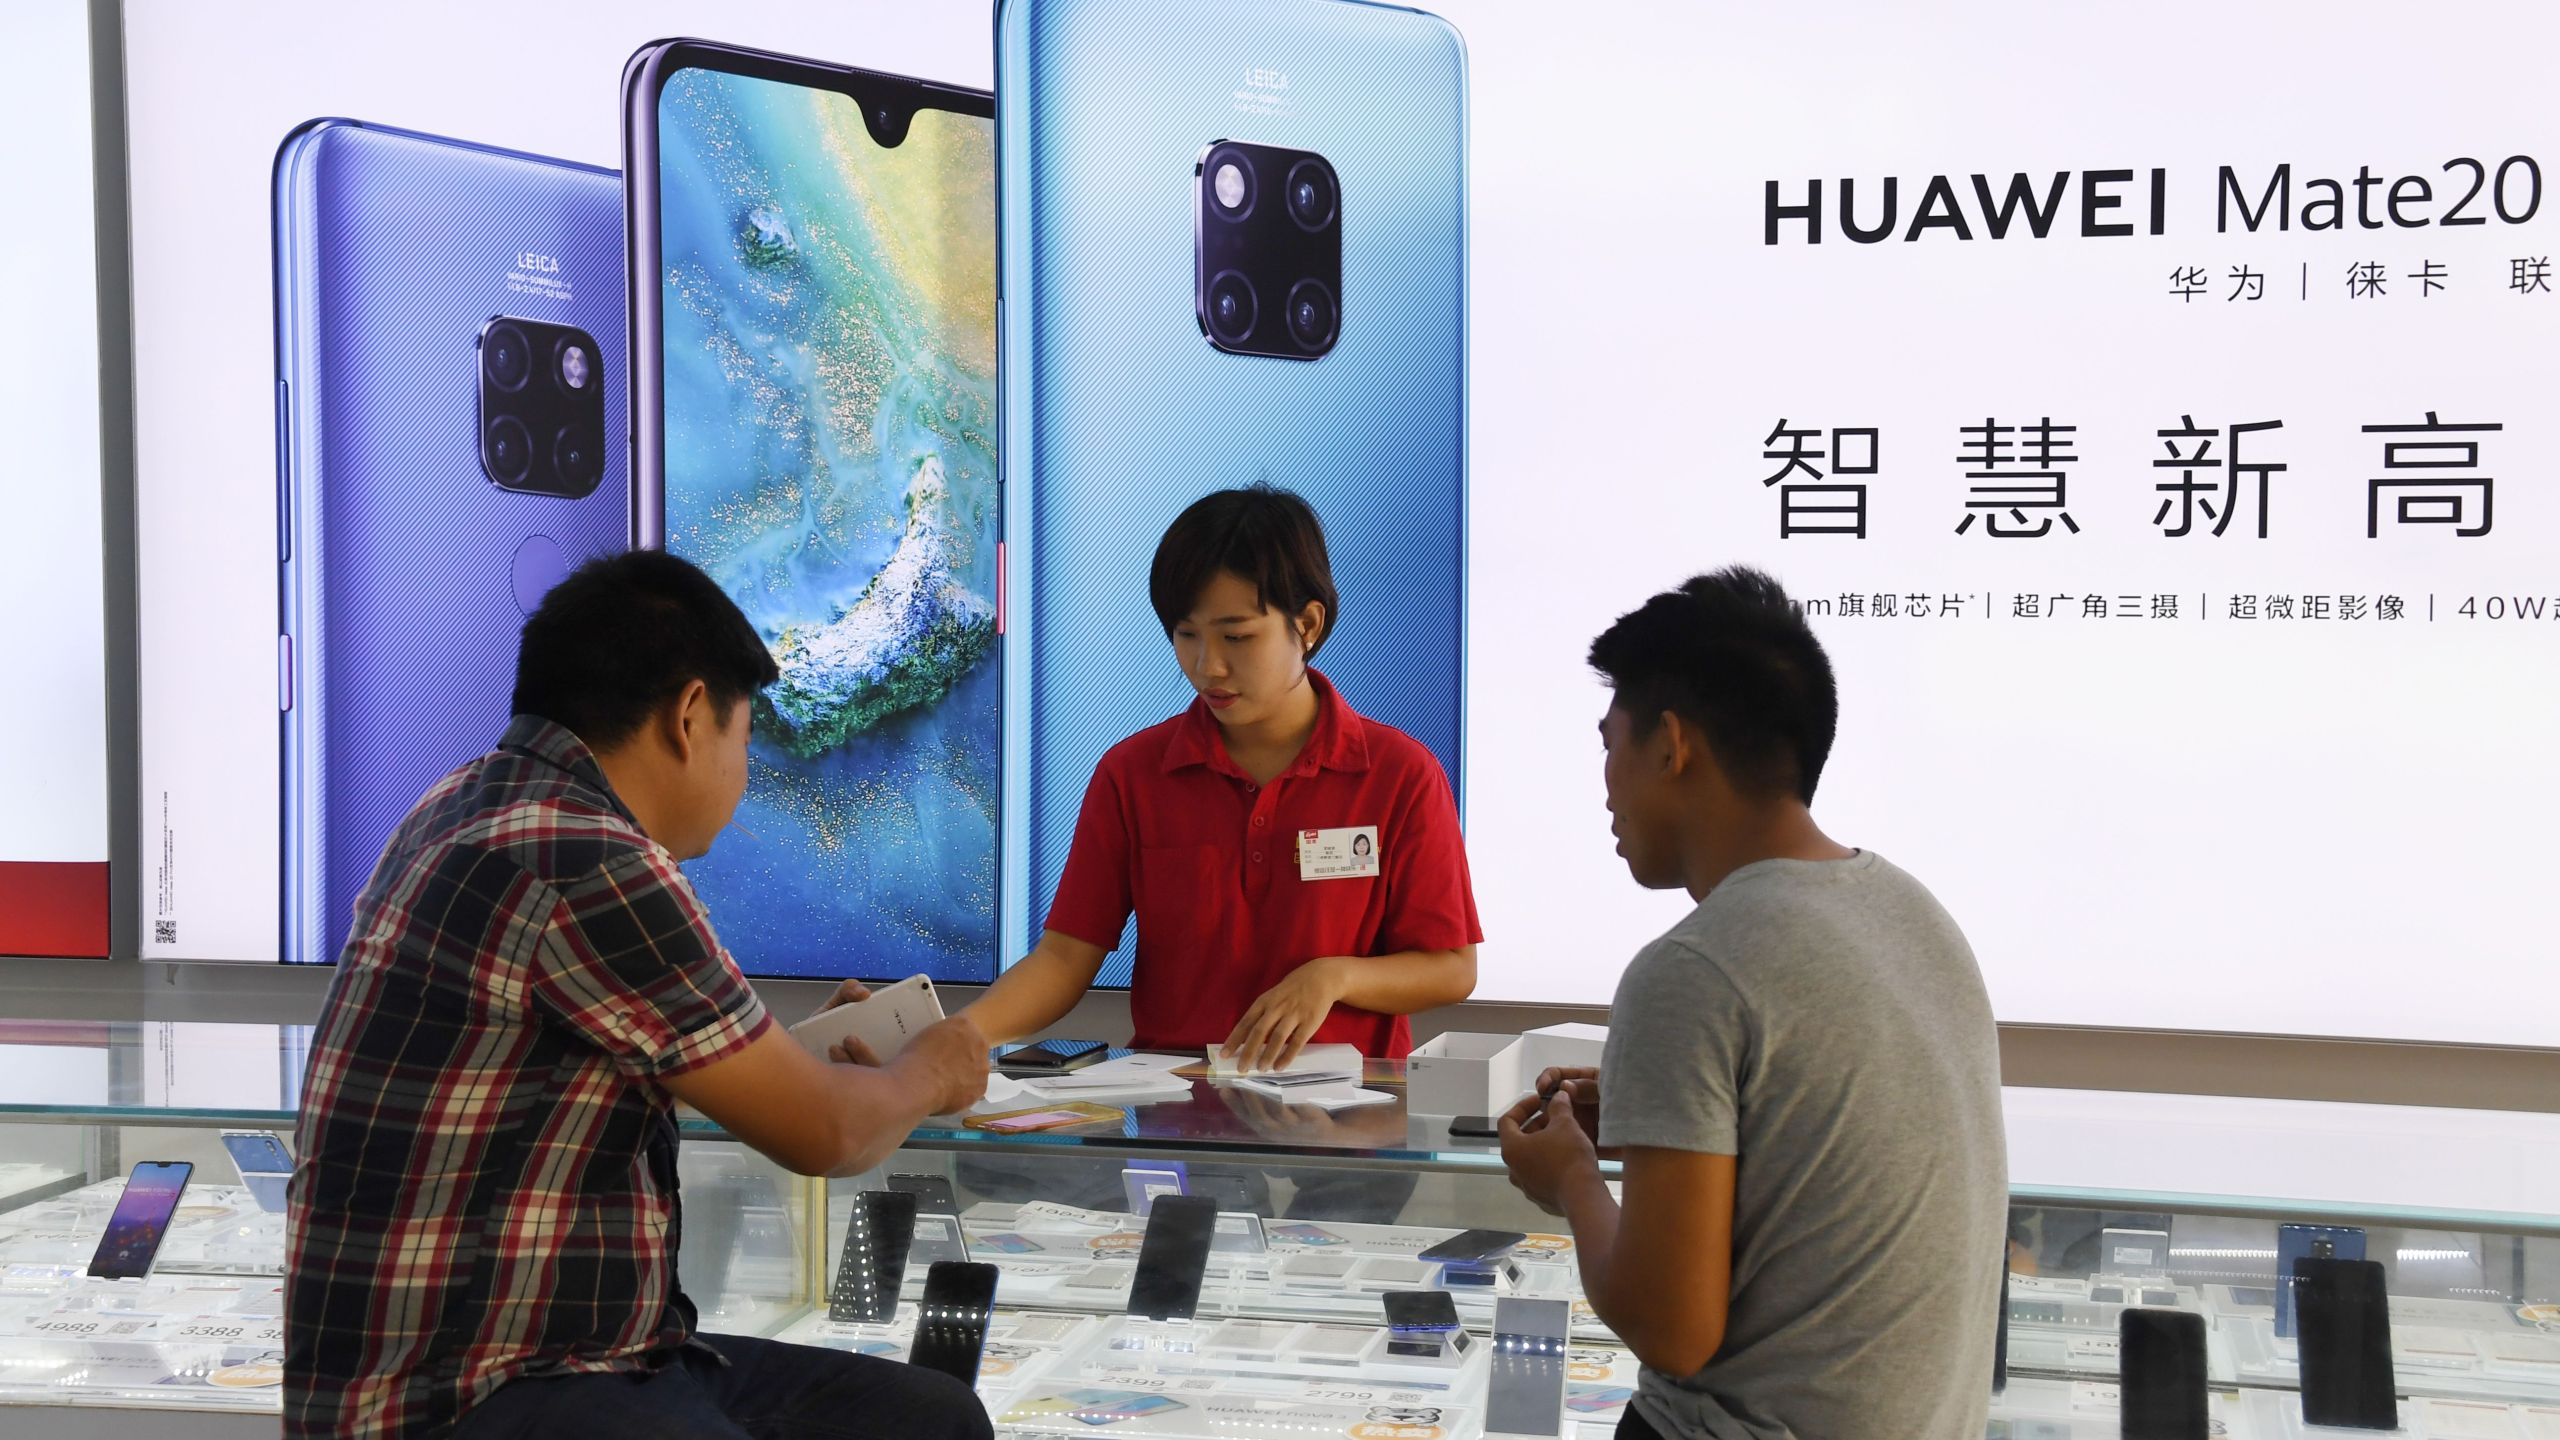 Customers are served at a Huawei stand in a store in Sanya on China's tropical Hainan Island on December 8, 2018.(Credit: Greg Baker/AFPGetty Images)